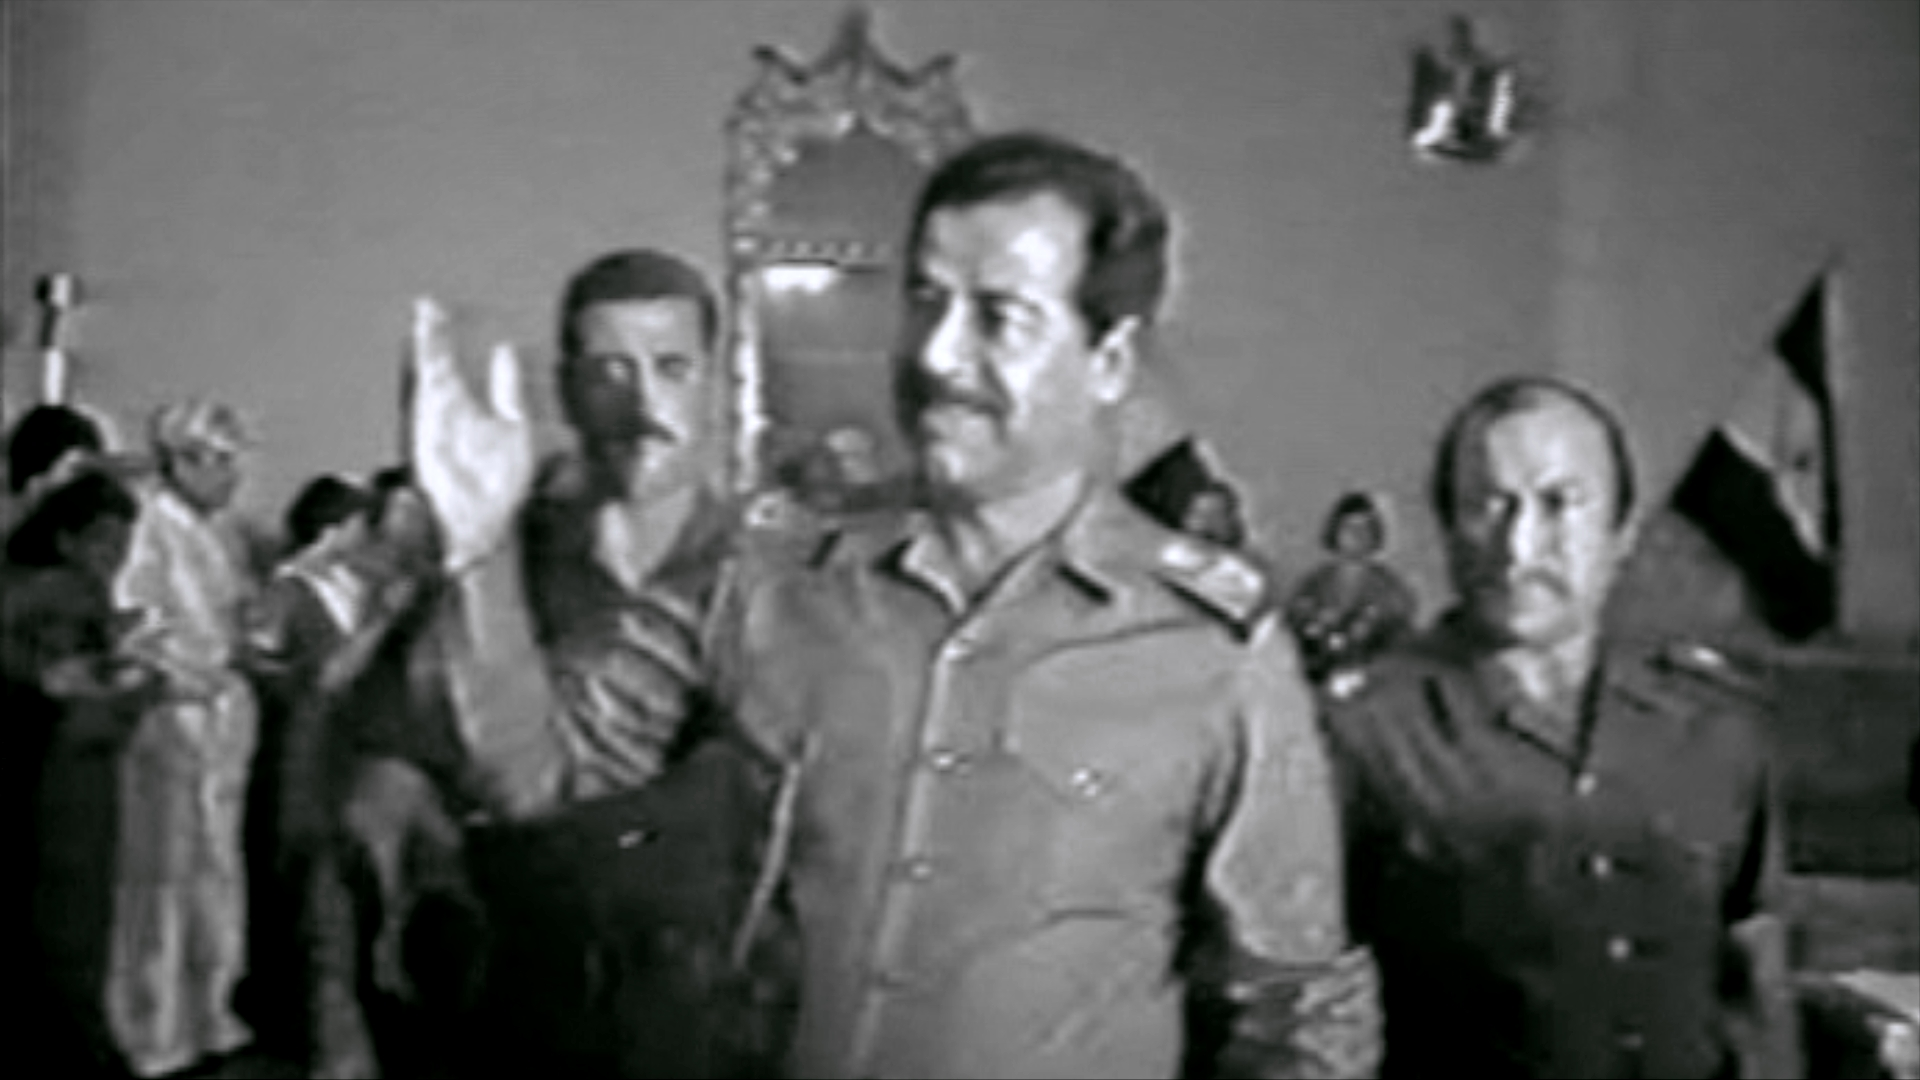 In late 1983, Saddam Hussein met Kurdish dignitaries in Erbil and suggested the missing 8,000 Barzanis, who had disappeared in July that year, had met a terrible end. The Barzanis were accused of having helped Iran in its war with Iraq.